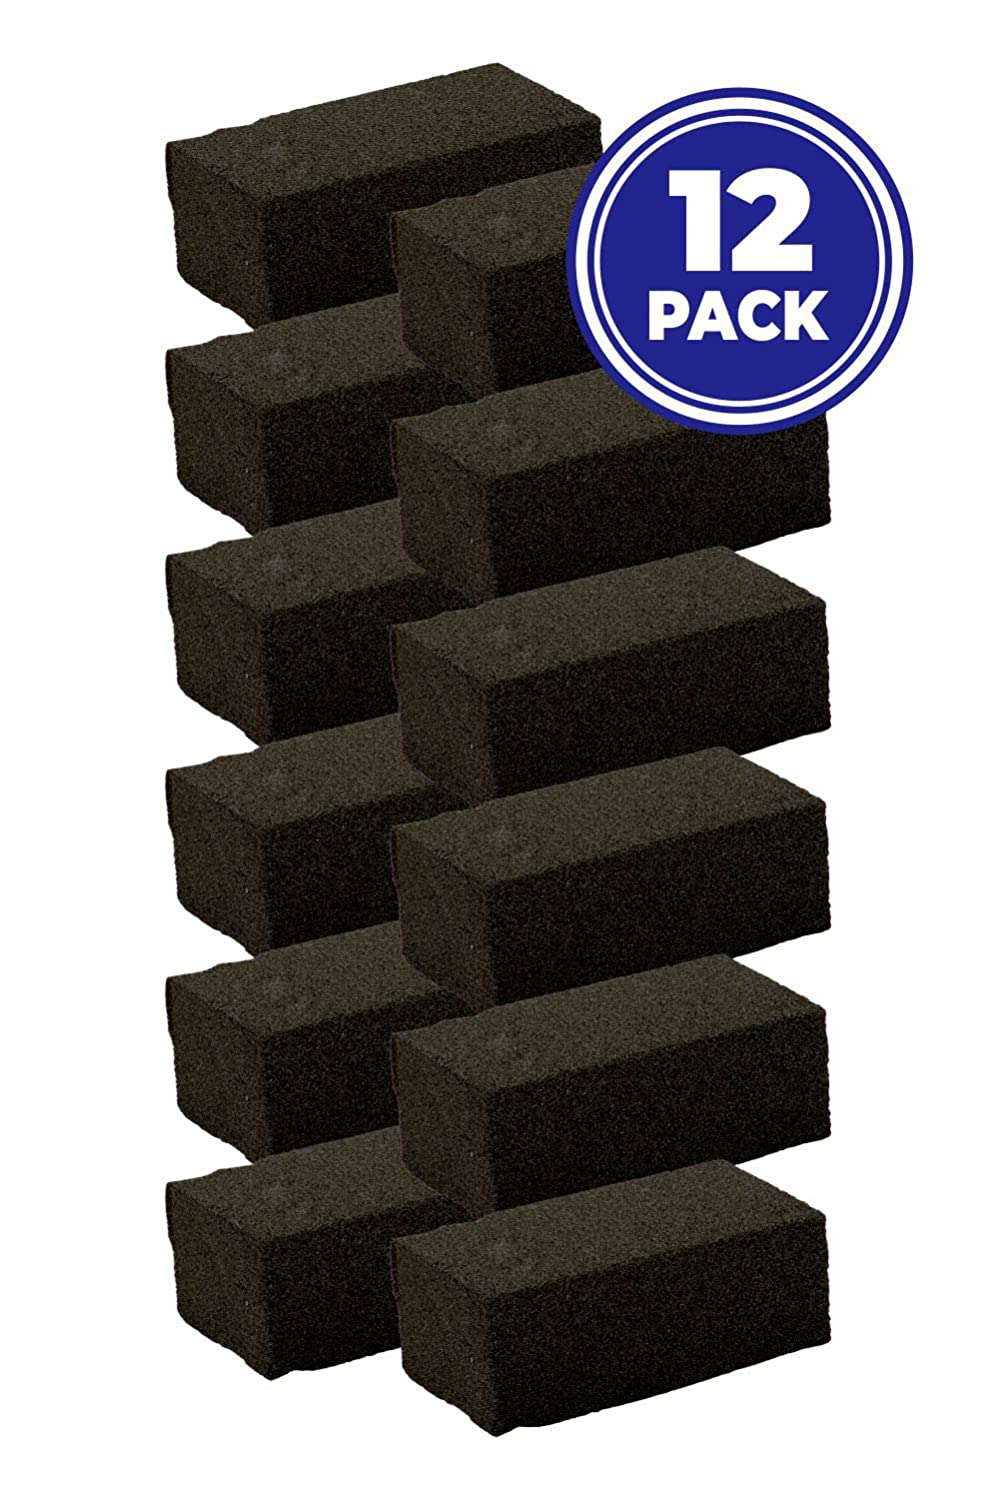 Pack of 4 Grill Bricks 4 NVM Trading Cleans Grills Effectively with No Chemicals Commercial Restaurant Grade Pumice Stone Barbecue Grill and Griddle Scraper Blocks